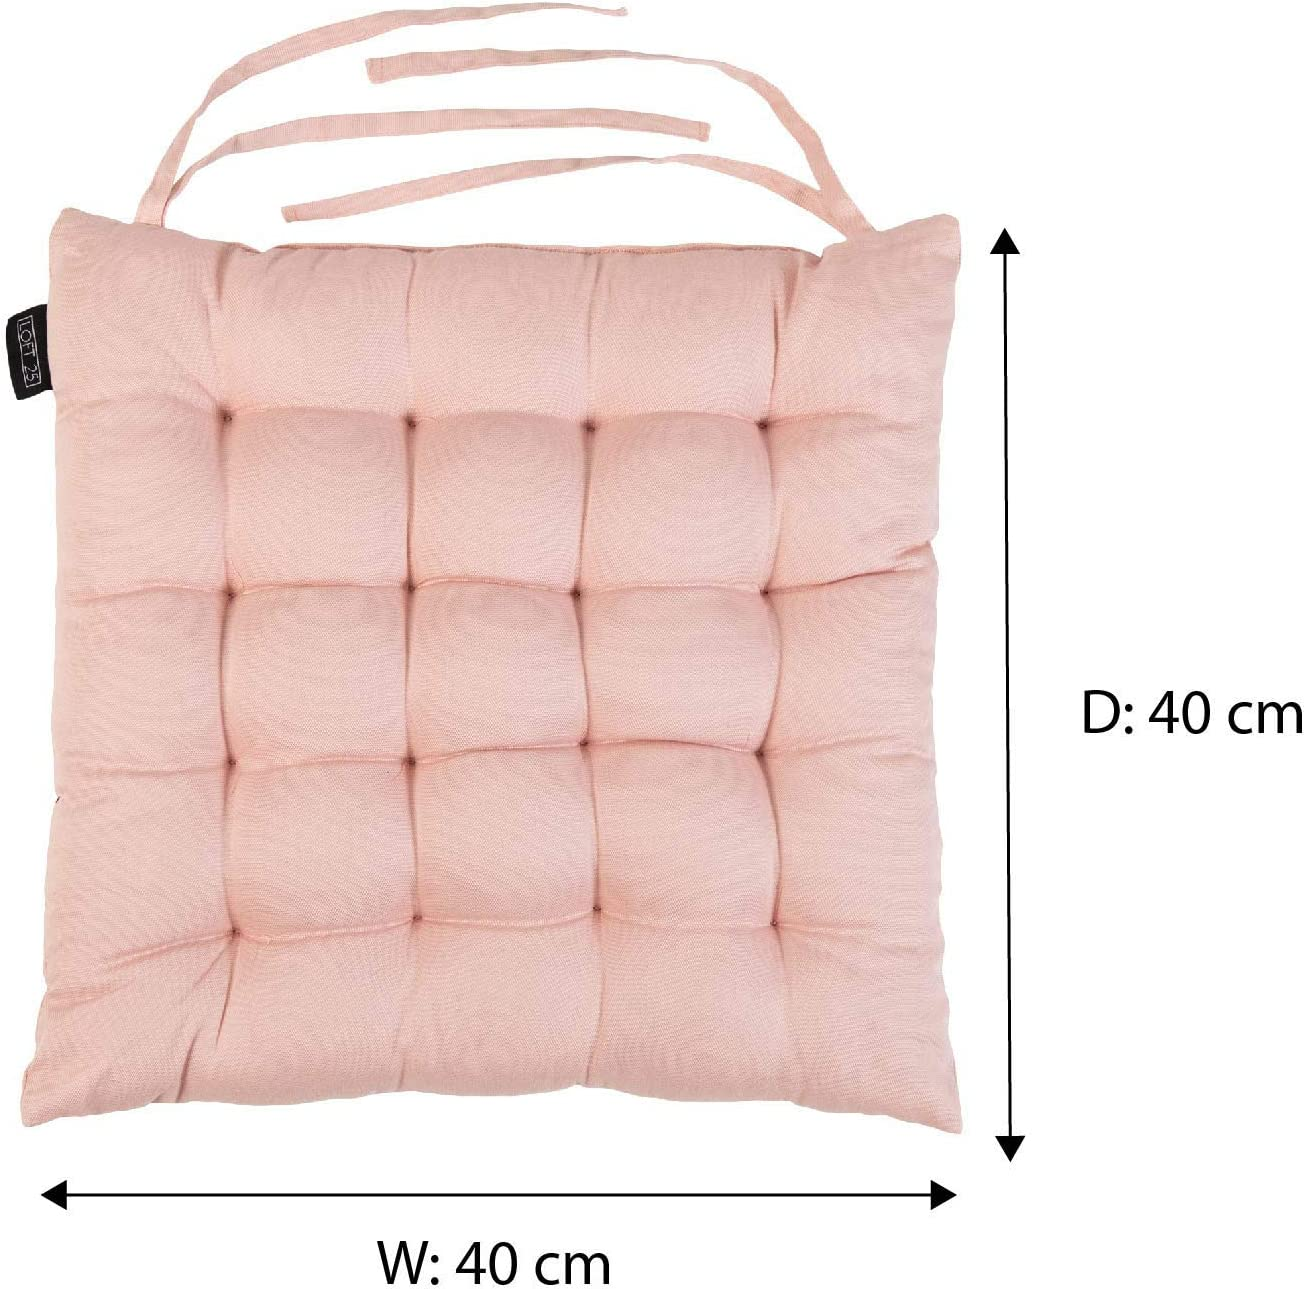 Dining Padded Seating Non Slip Secure Ties Soft Comfy Tufted Premium Design Pink, Set of 1 Loft 25 Chair Cushion Seat Pad